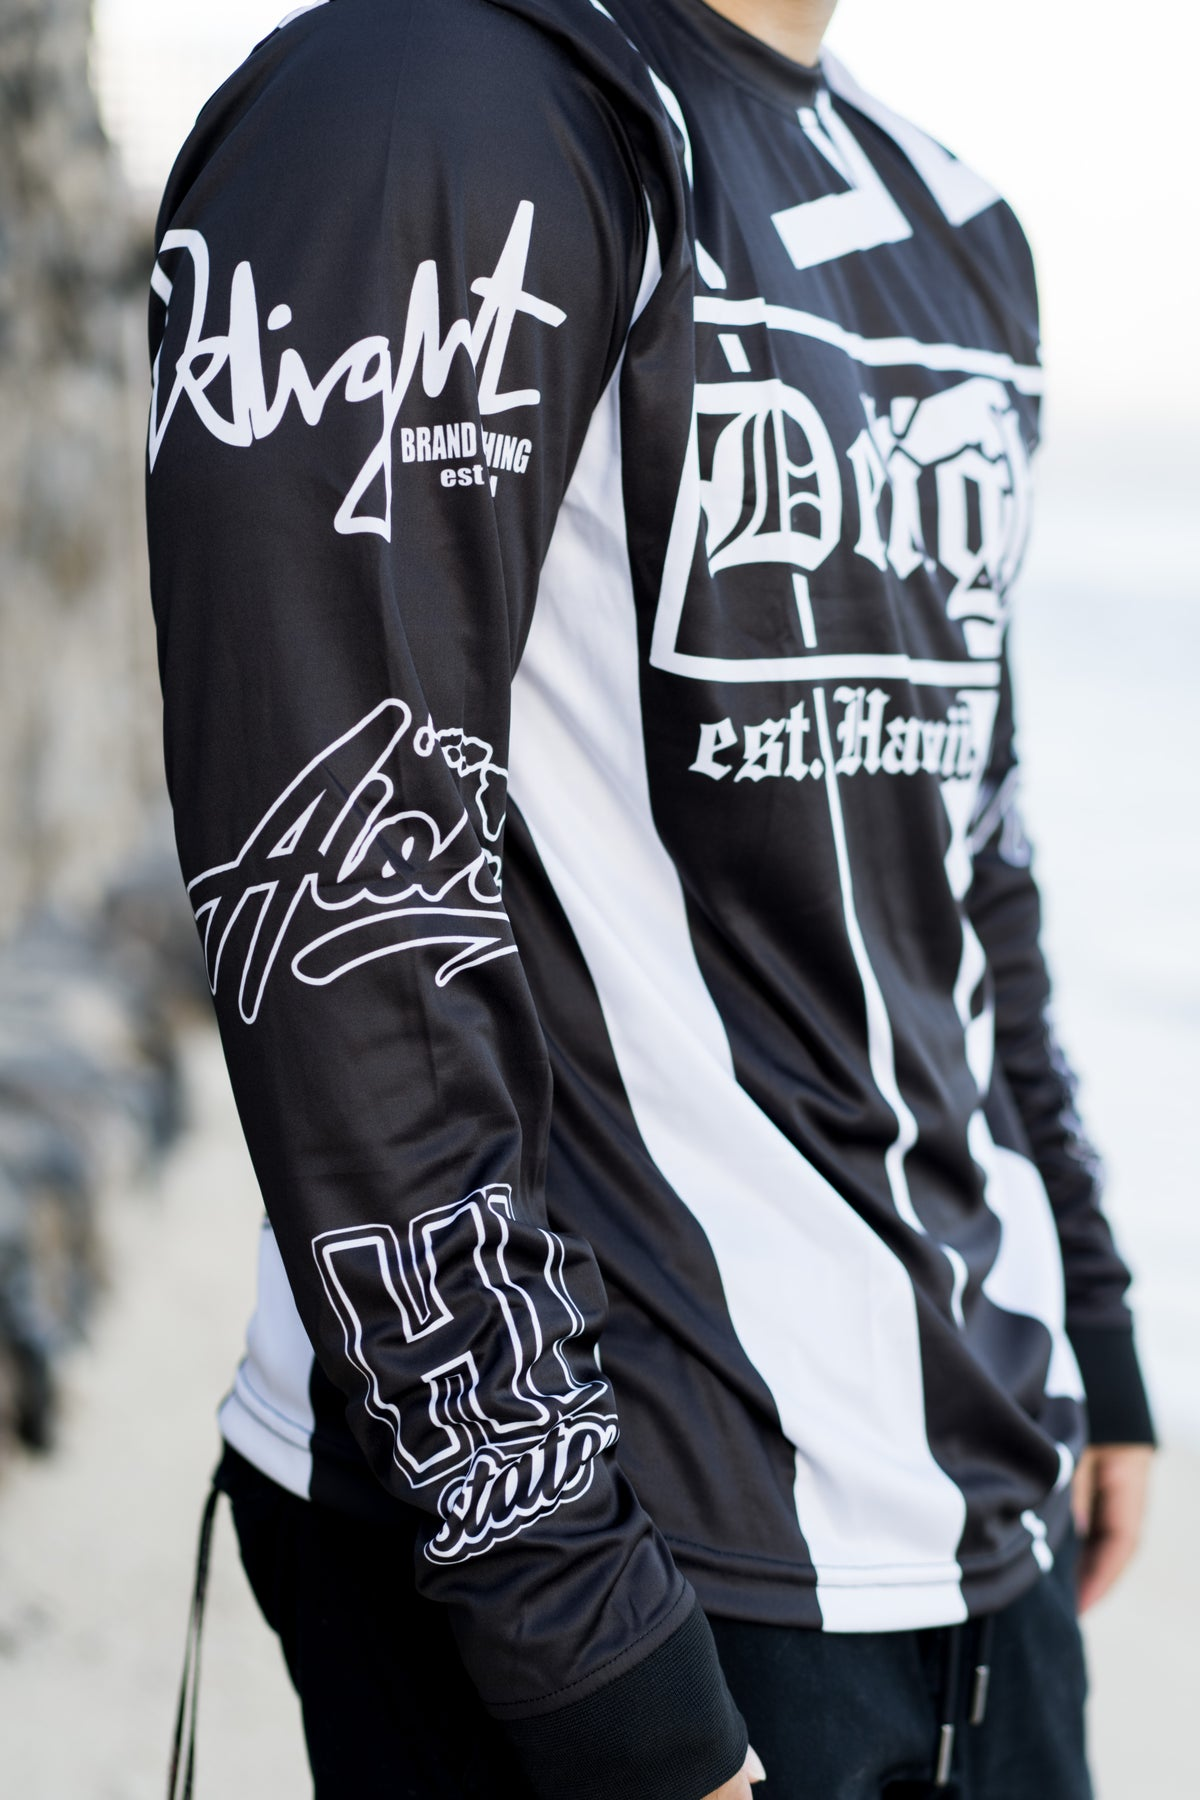 Delight EST. Black/White Sublimation Longsleeve